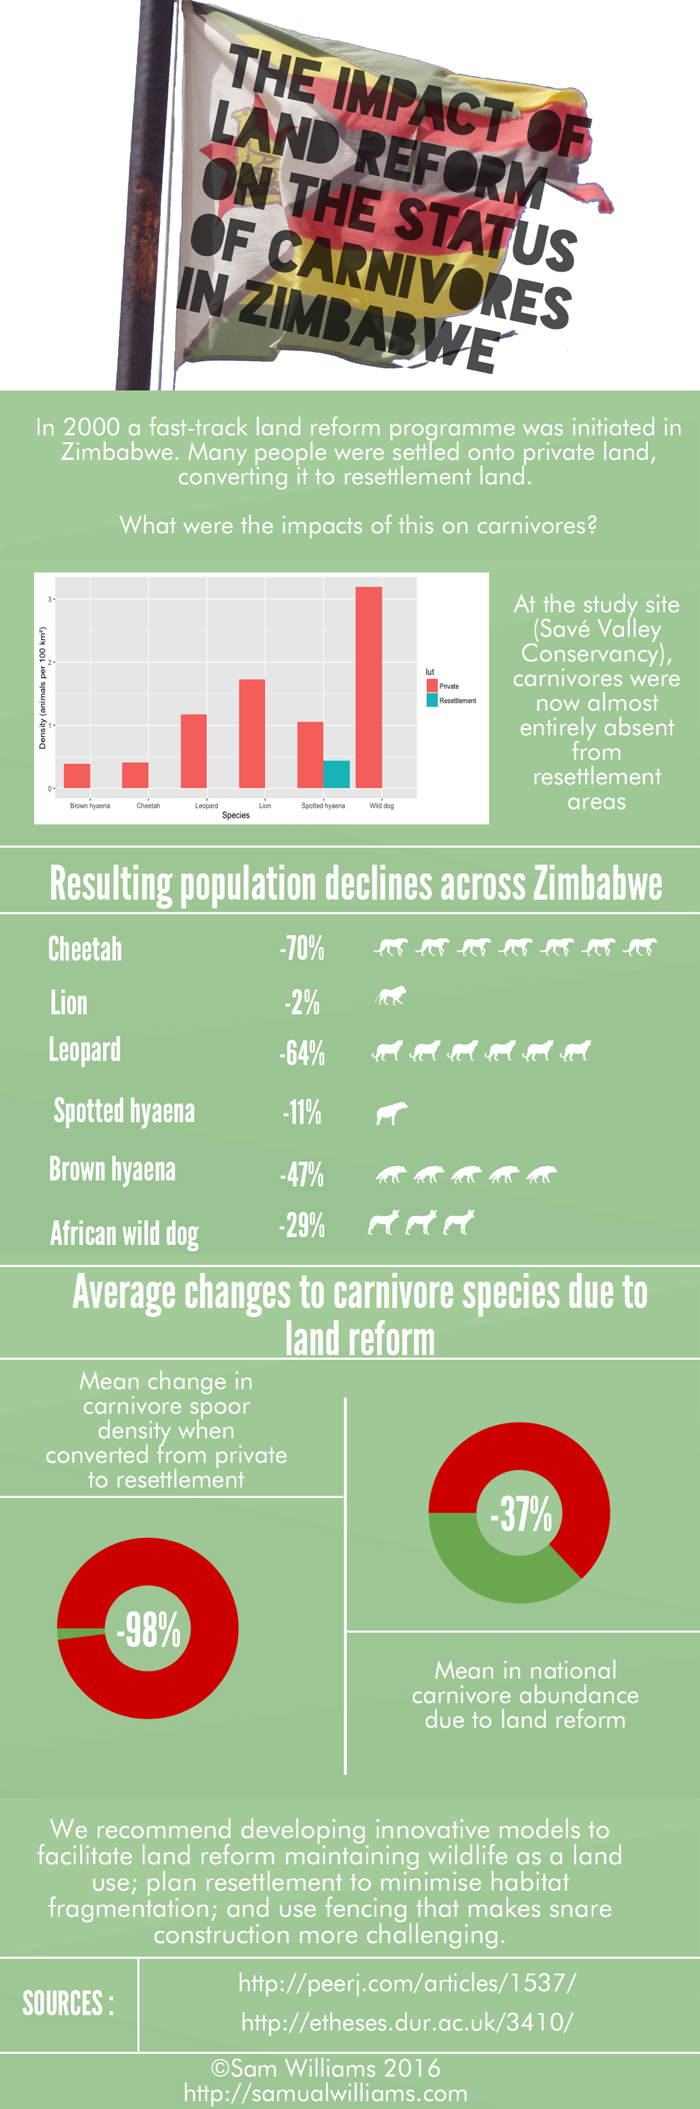 An infographic summarising the findings